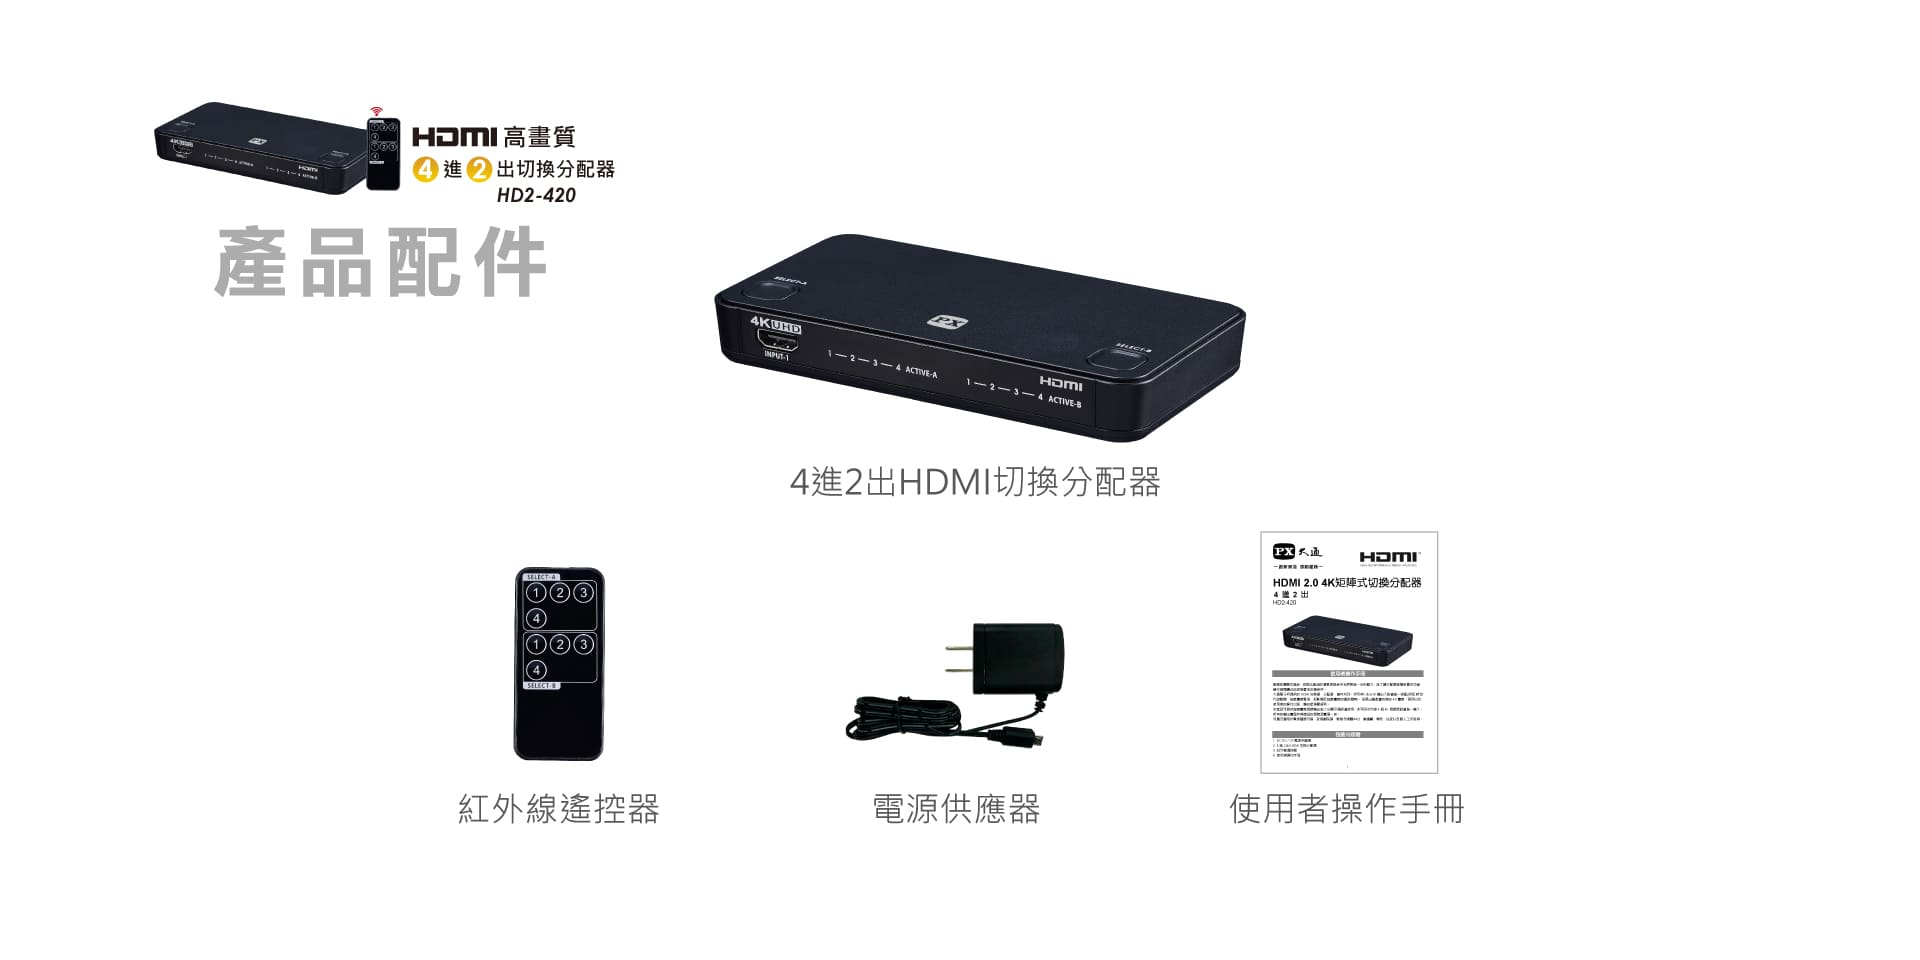 proimages/product/HDMI/HD2-420/HD2-420_07.jpg